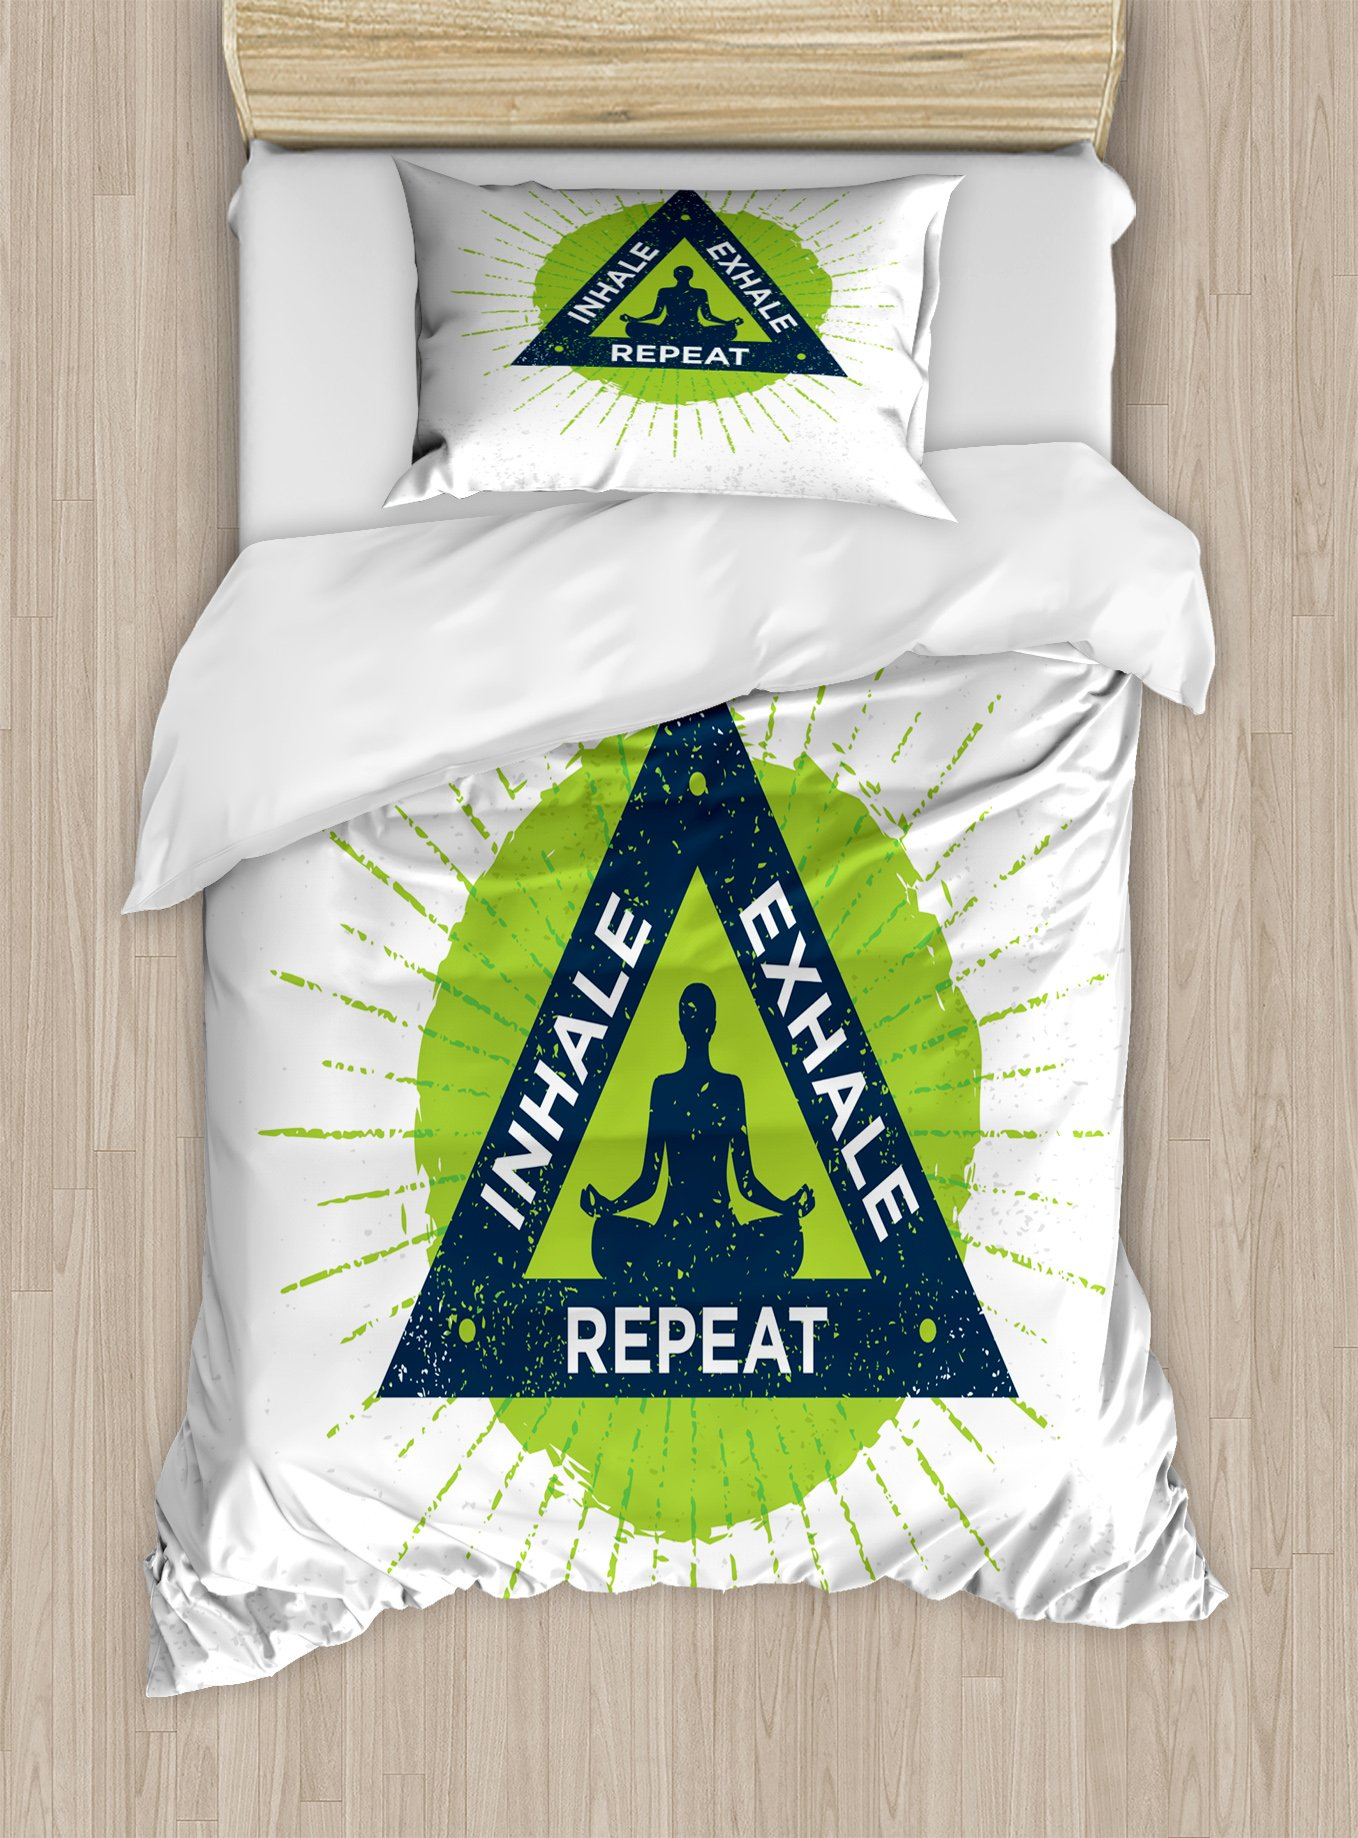 Ambesonne Inhale Exhale Twin Size Duvet Cover Set, Spa Yoga Retreat Theme Meditating Woman Ancient Practice Philosophy, Decorative 2 Piece Bedding Set with 1 Pillow Sham, Lime Green Dark Blue